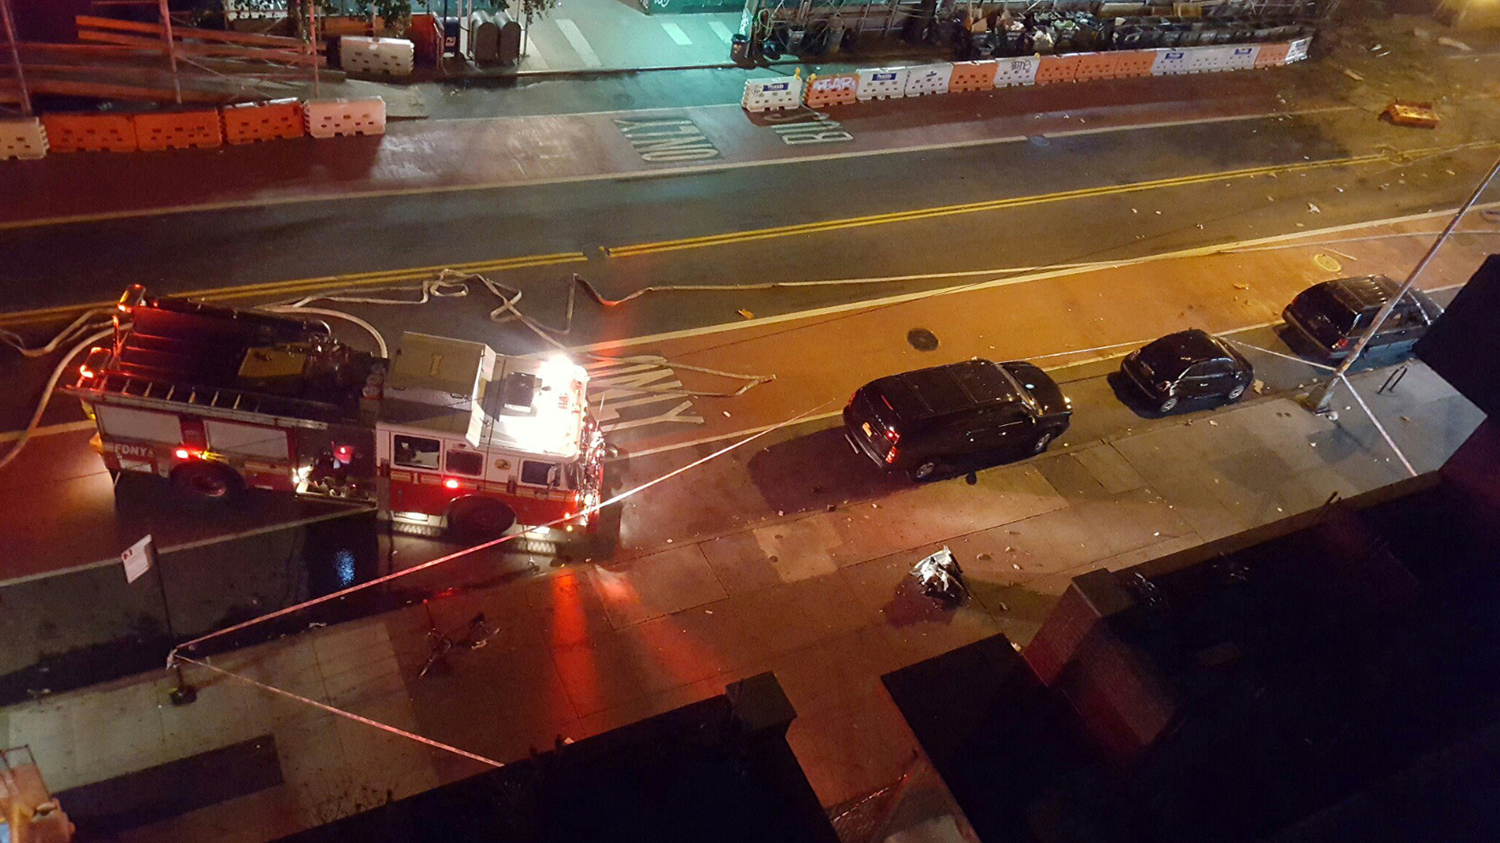 NEW YORK 2016-09-18 Fire rescue crews block off the street near the scene of an explosion in the Chelsea neighbourhood of New York, U.S. in this September 17, 2016 handout photo obtained via Twitter. Neha Jain via Twitter/Handout via REUTERS ATTENTION EDITORS - THIS IMAGE WAS PROVIDED BY A THIRD PARTY. FOR EDITORIAL USE ONLY. NO RESALES. NO ARCHIVES TPX IMAGES OF THE DAY Photo: / REUTERS / TT / kod 72000